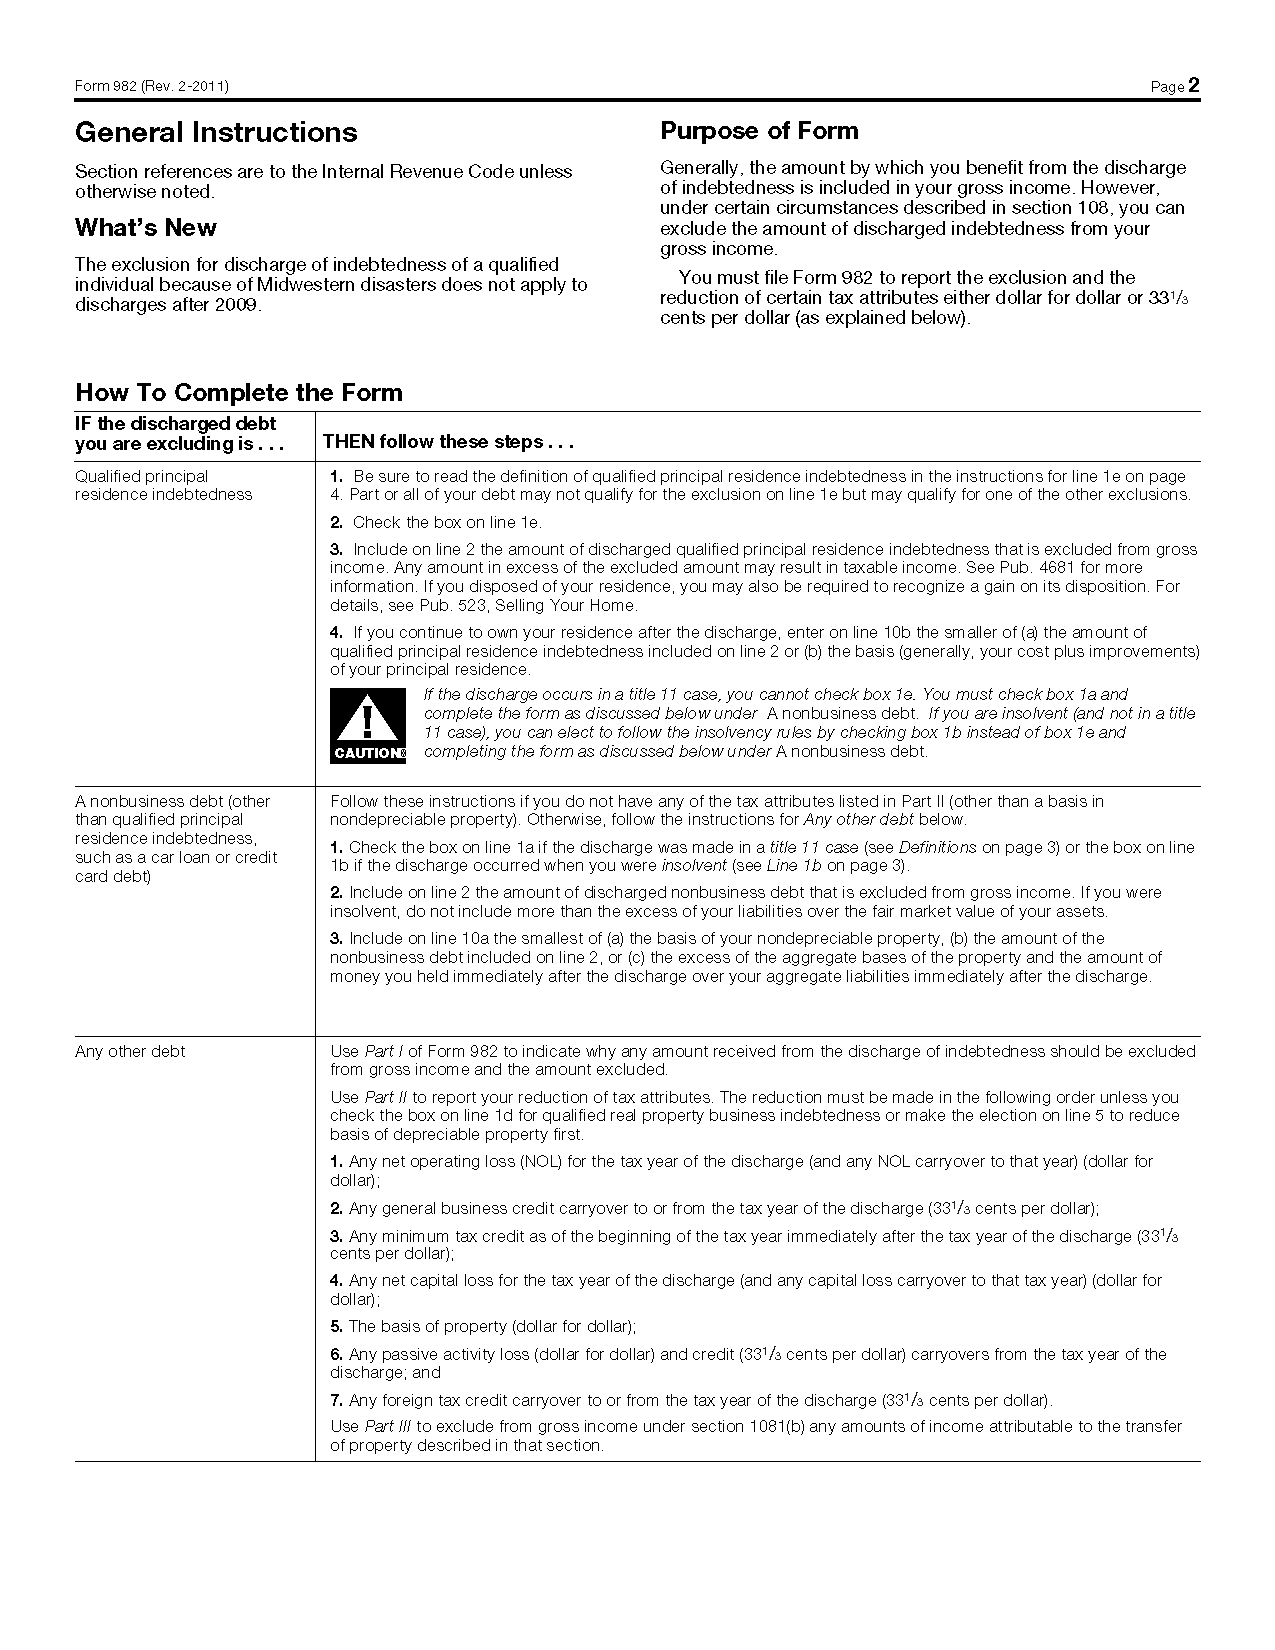 Worksheet Irs Form 982 Insolvency Worksheet Grass Fedjp